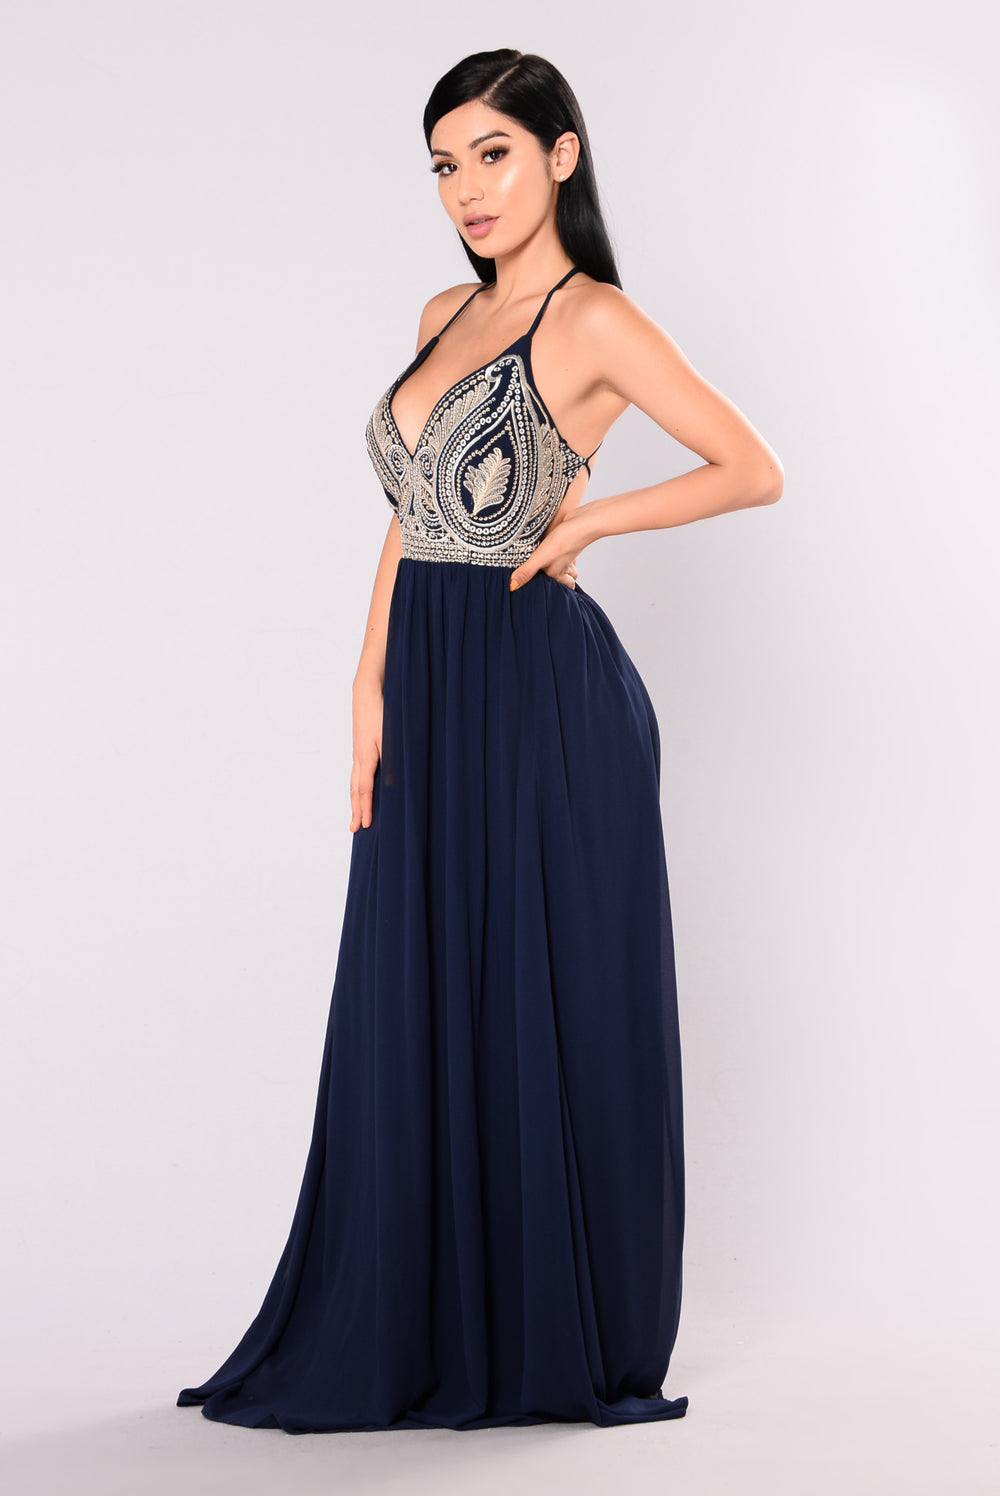 Splendor Maxi Dress - Navy